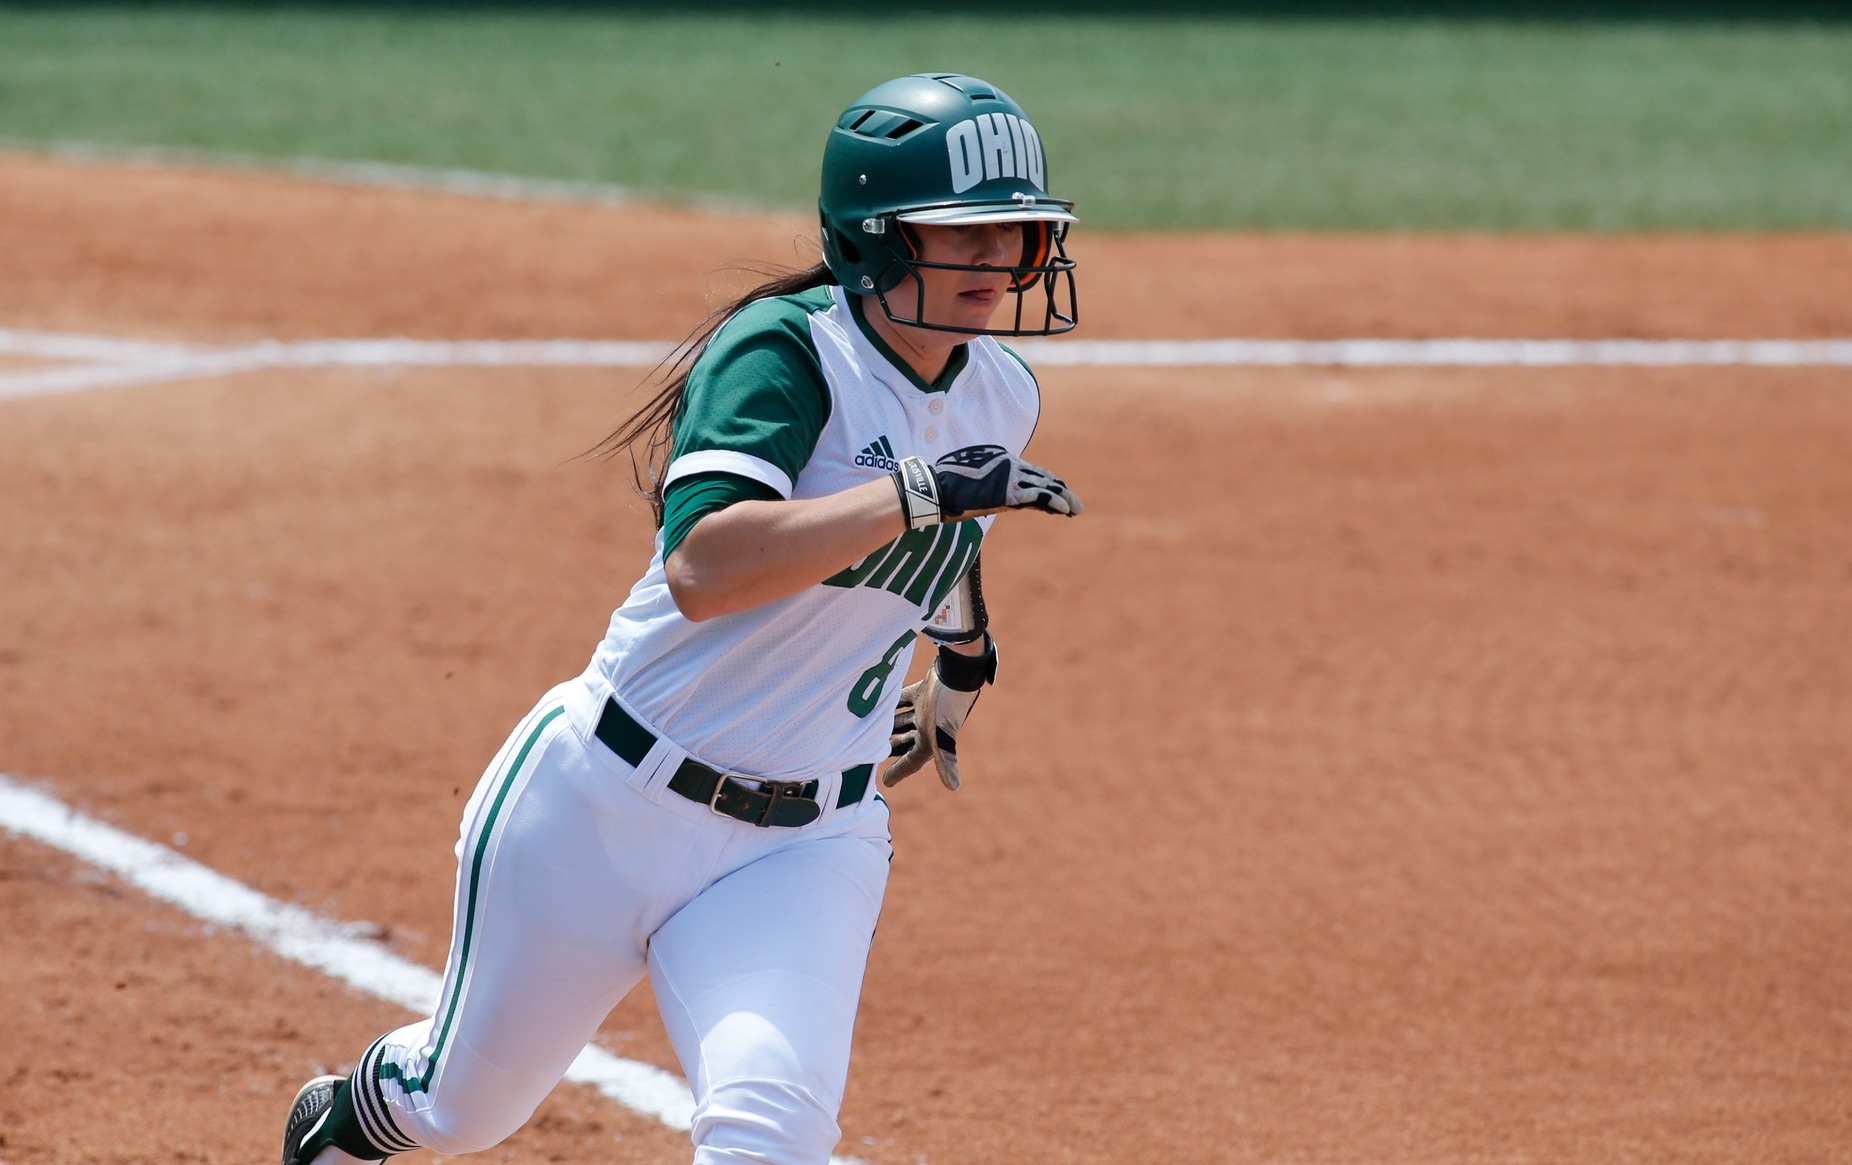 Yun's Three Homeruns Lead Ohio Softball Over Pitt